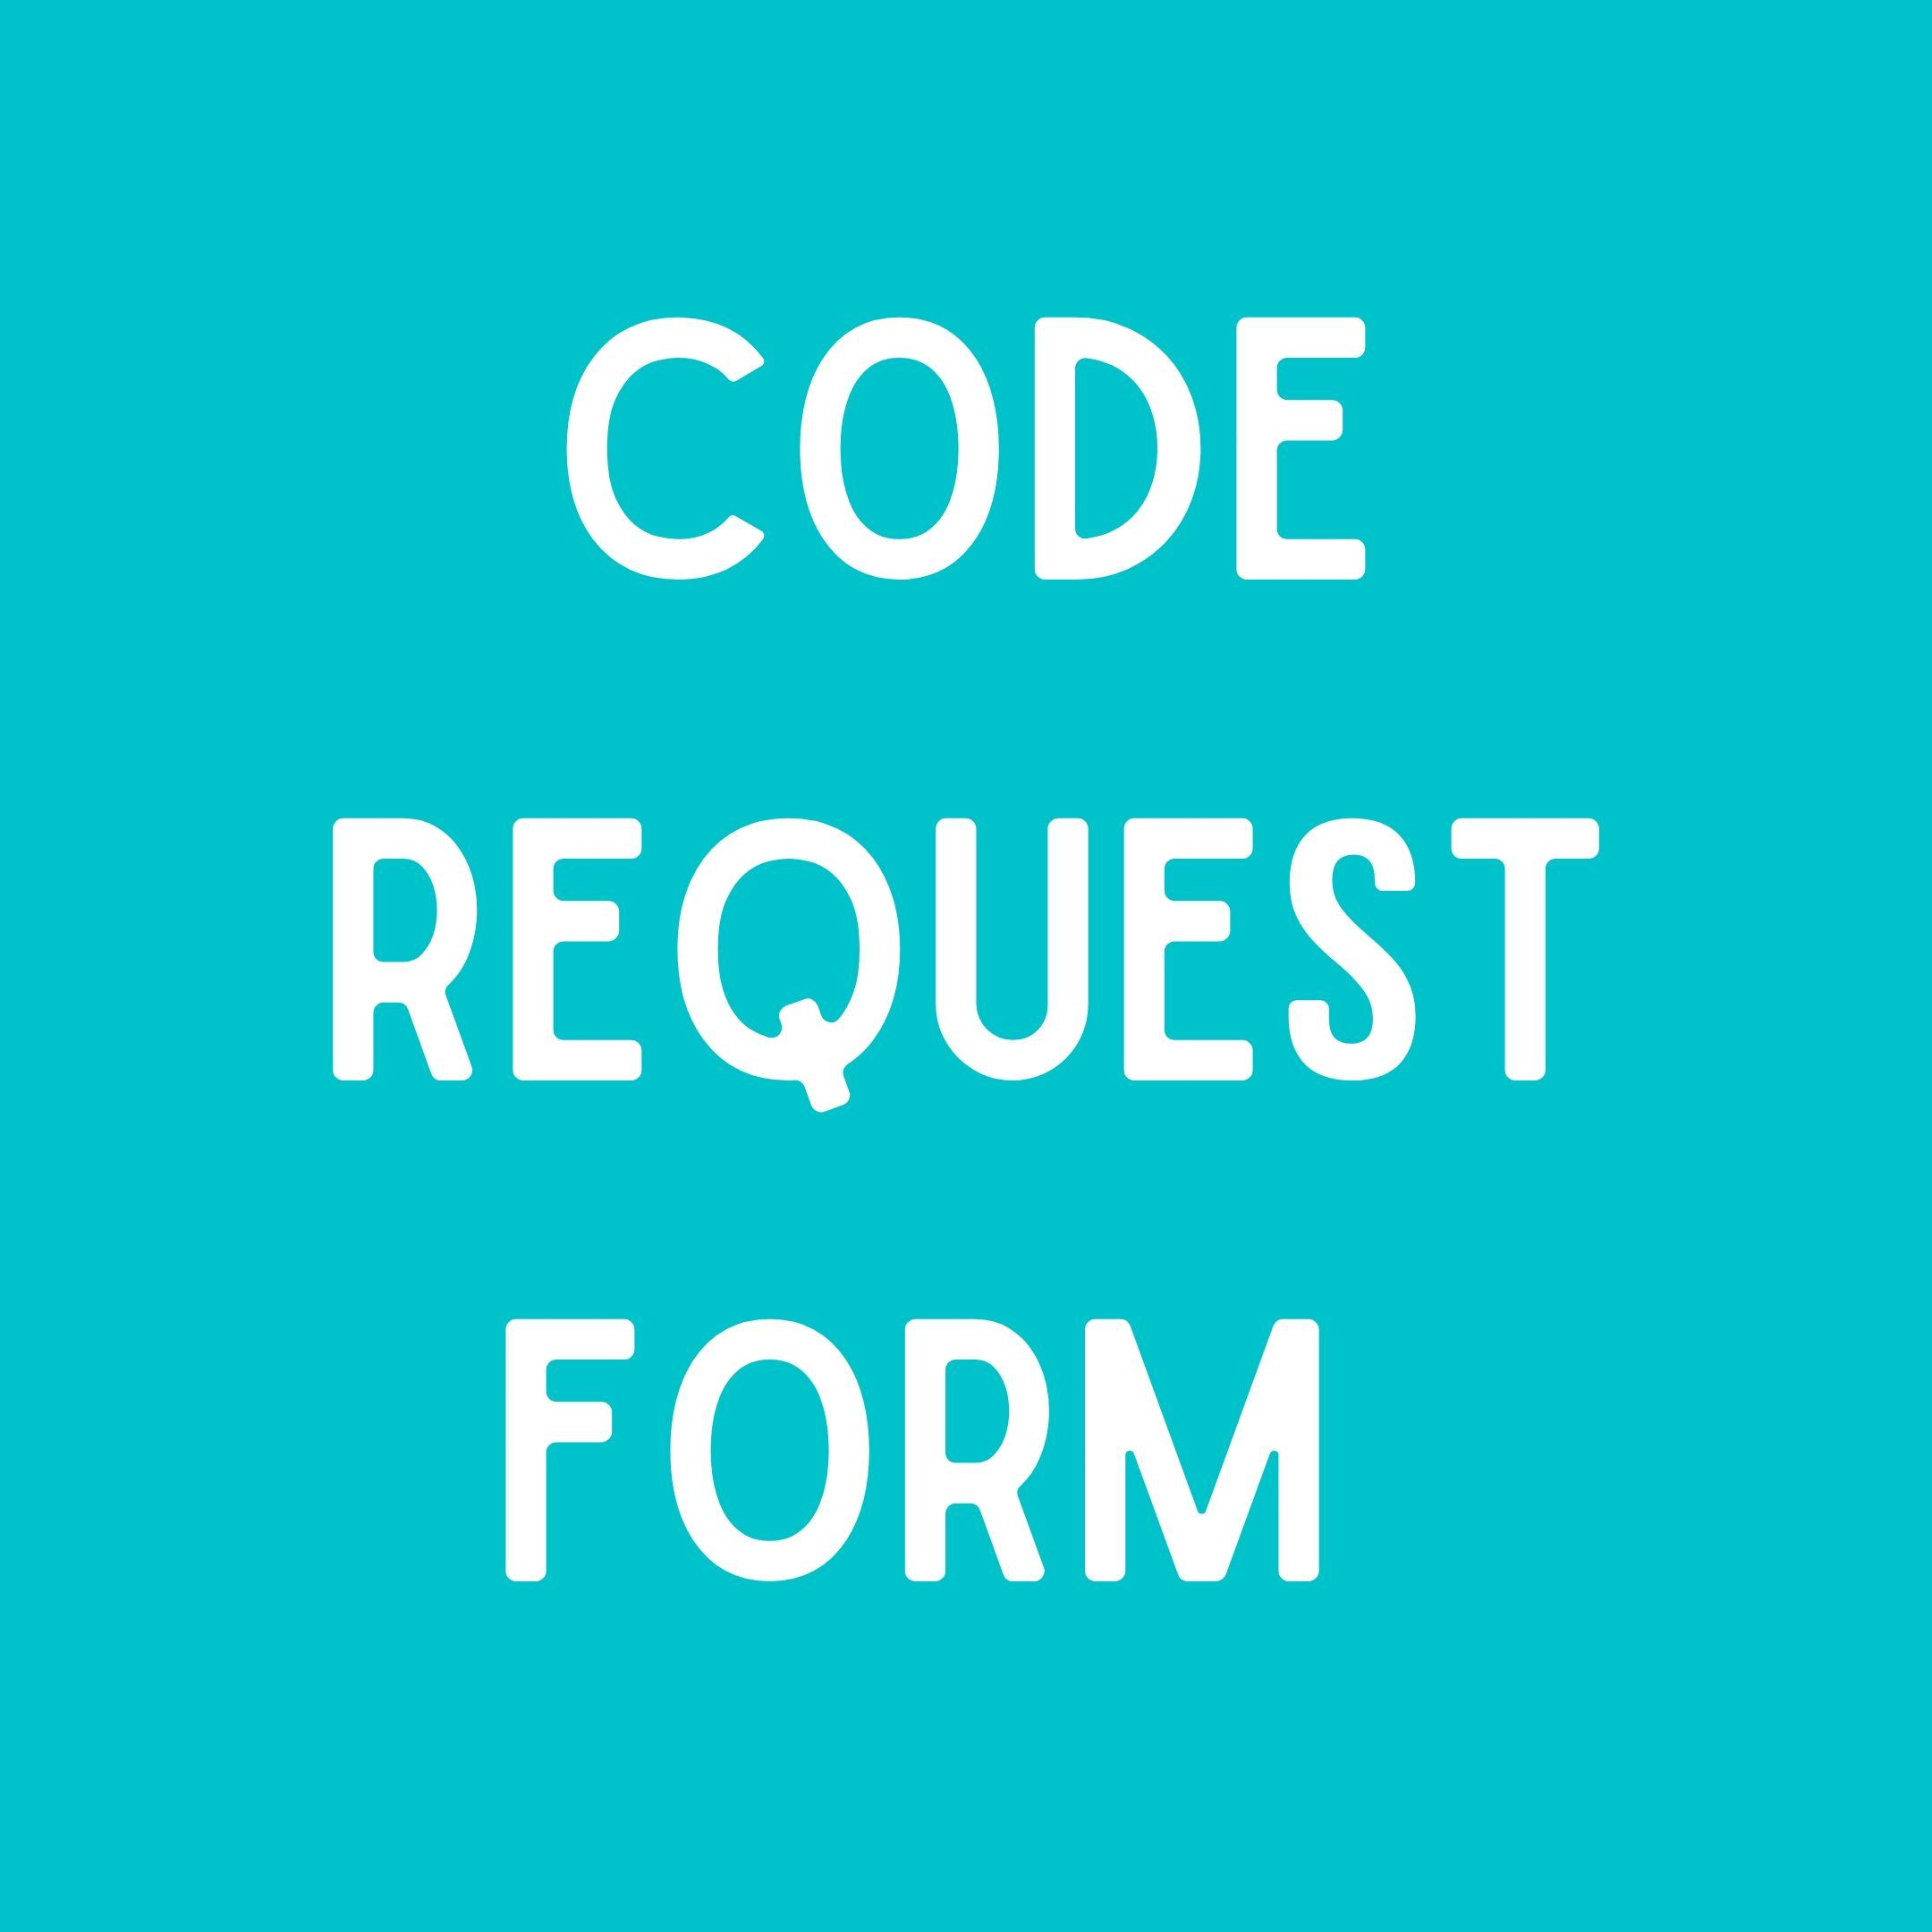 code request form